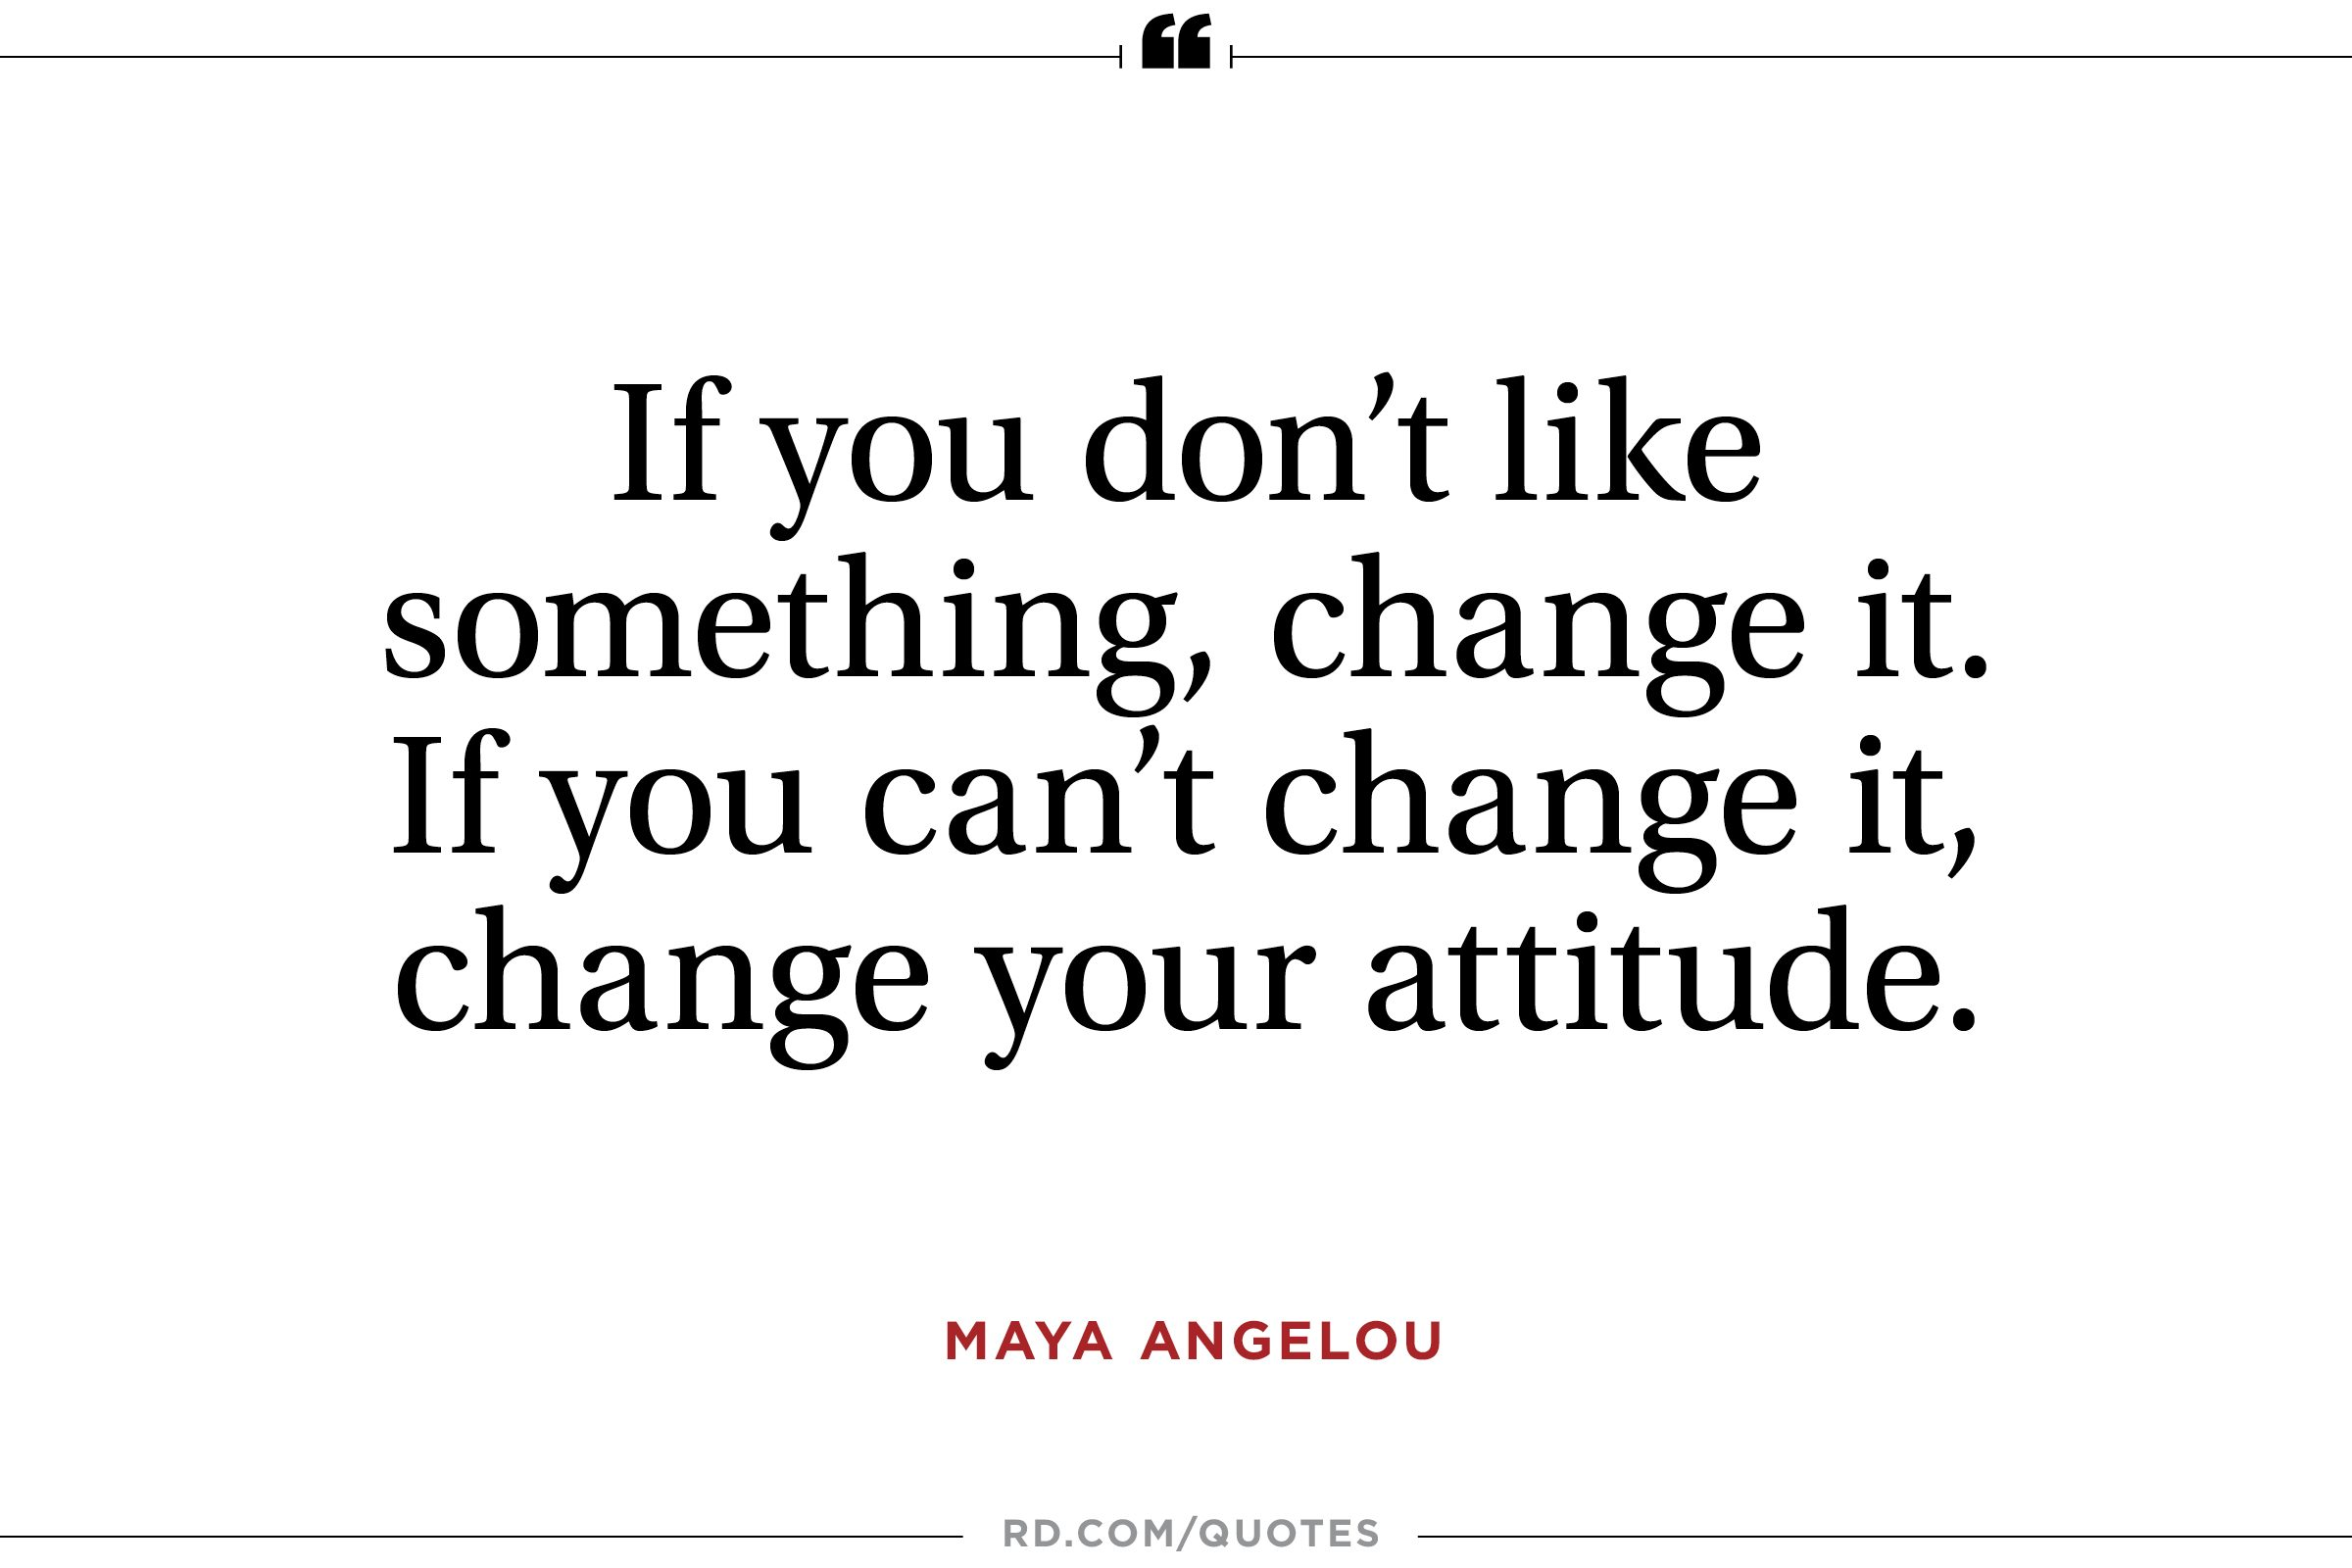 Maya Angelou at Her Best: 8 Quotable Quotes  Reader\u002639;s Digest